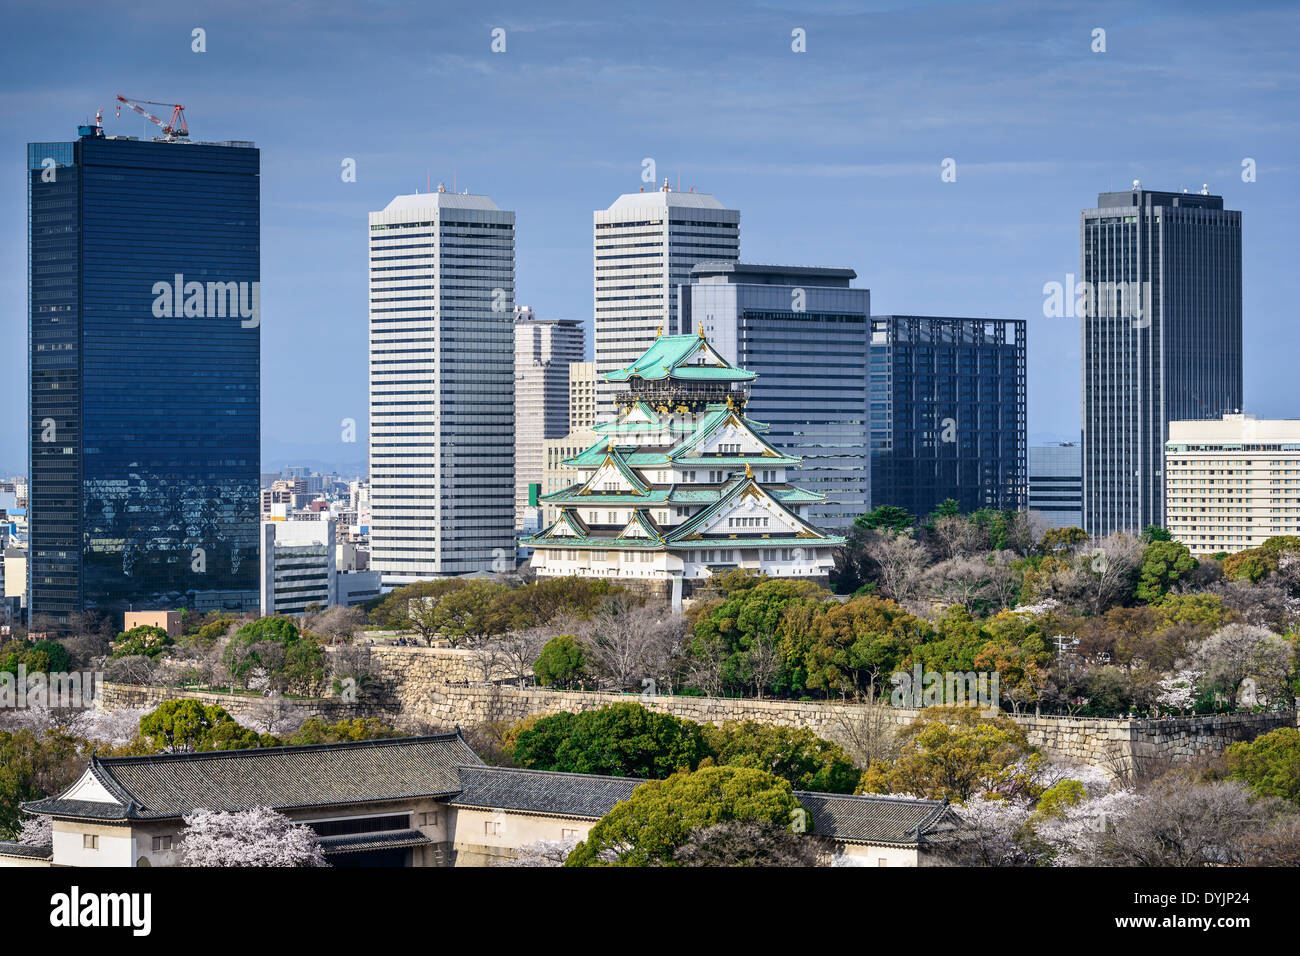 Osaka, Japon au château d'Osaka. Photo Stock